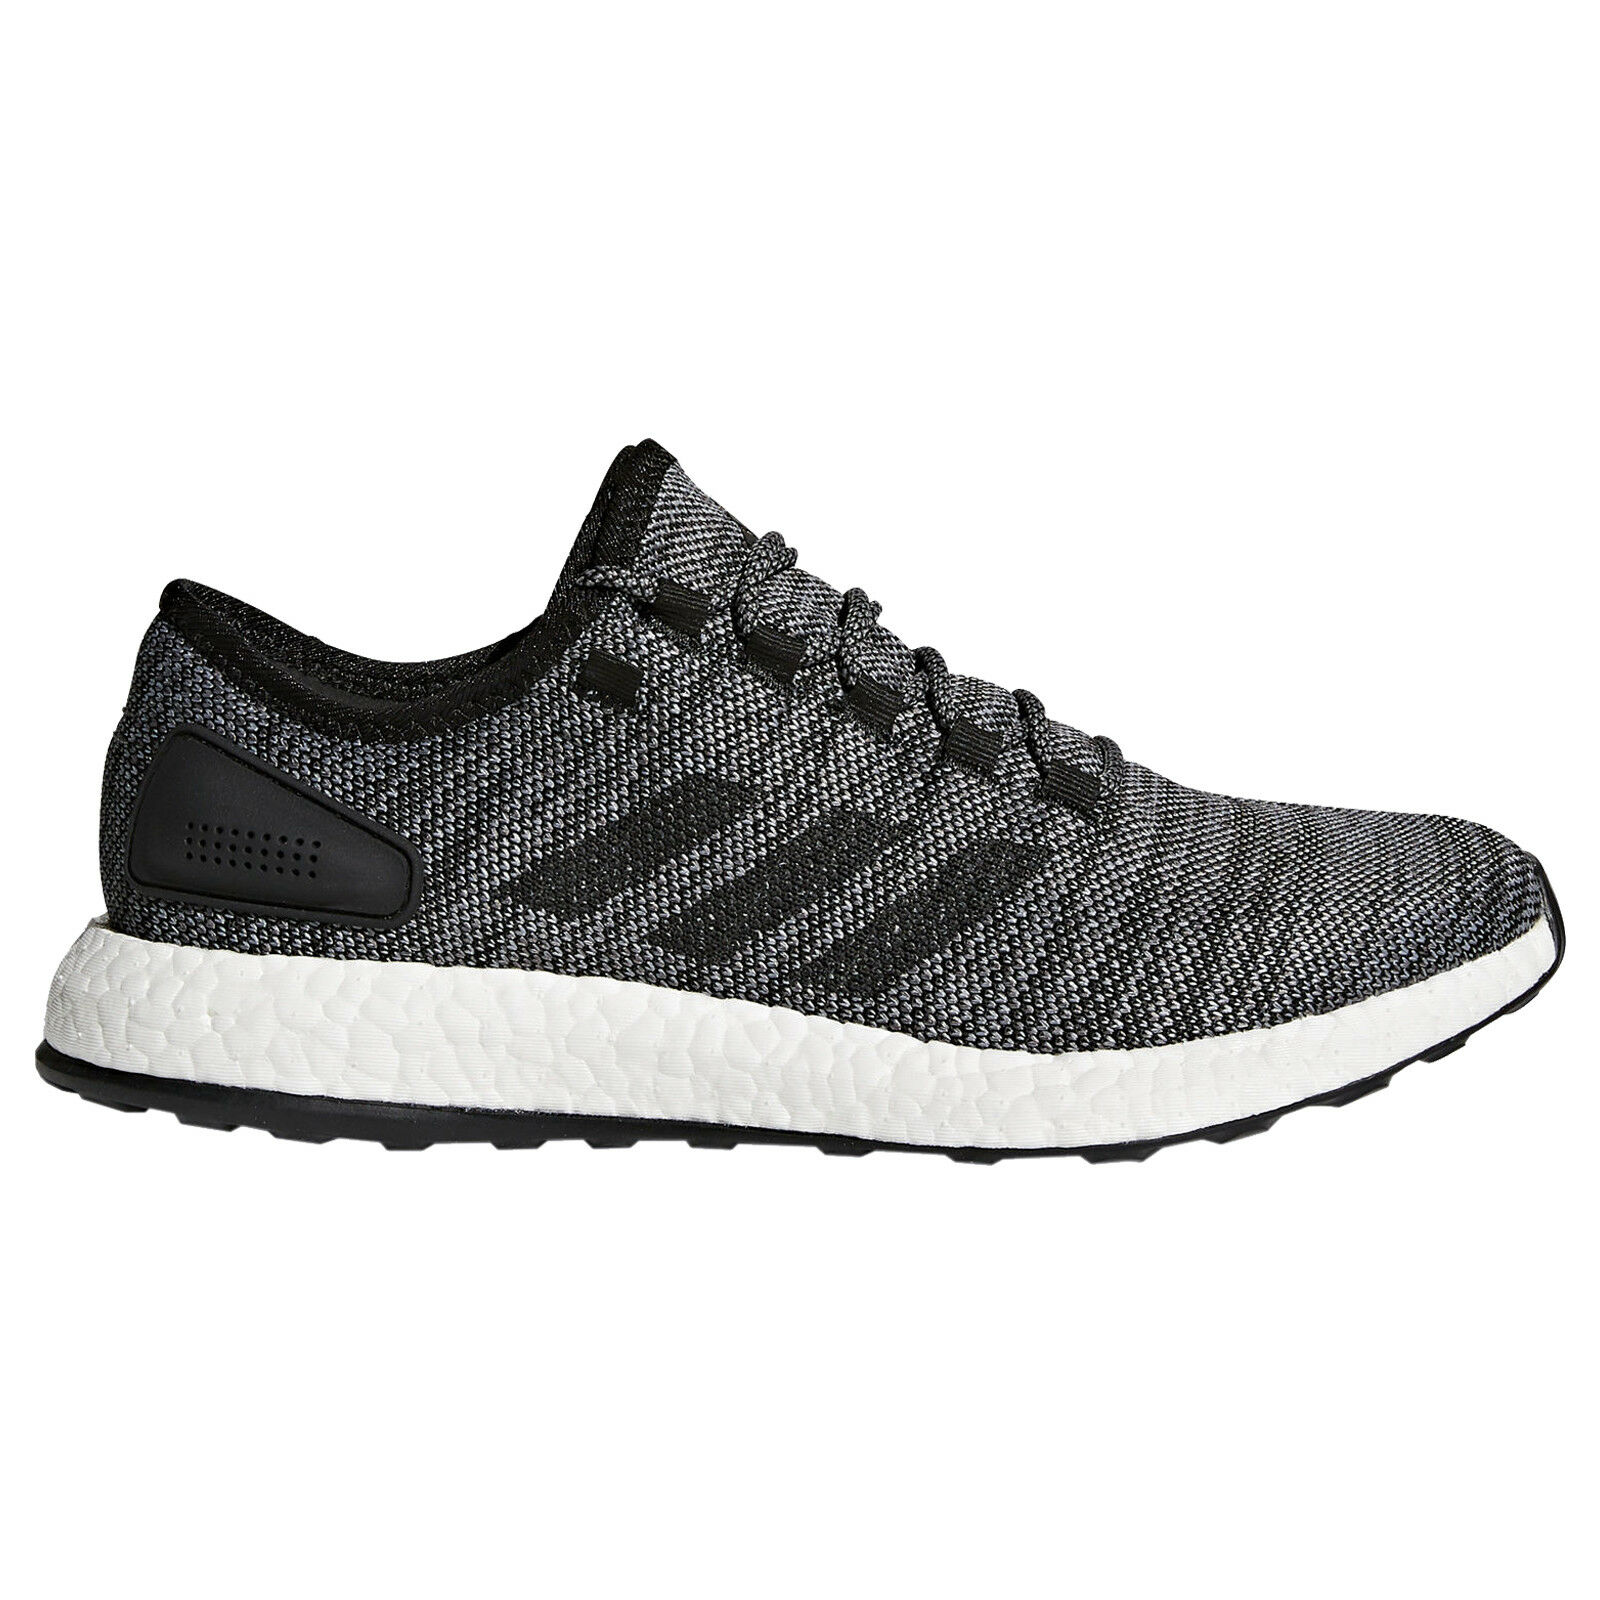 Adidas PureBOOST All Terrain Mens Sneakers S80787 - Grey, Black (NEW) Lists@ 160